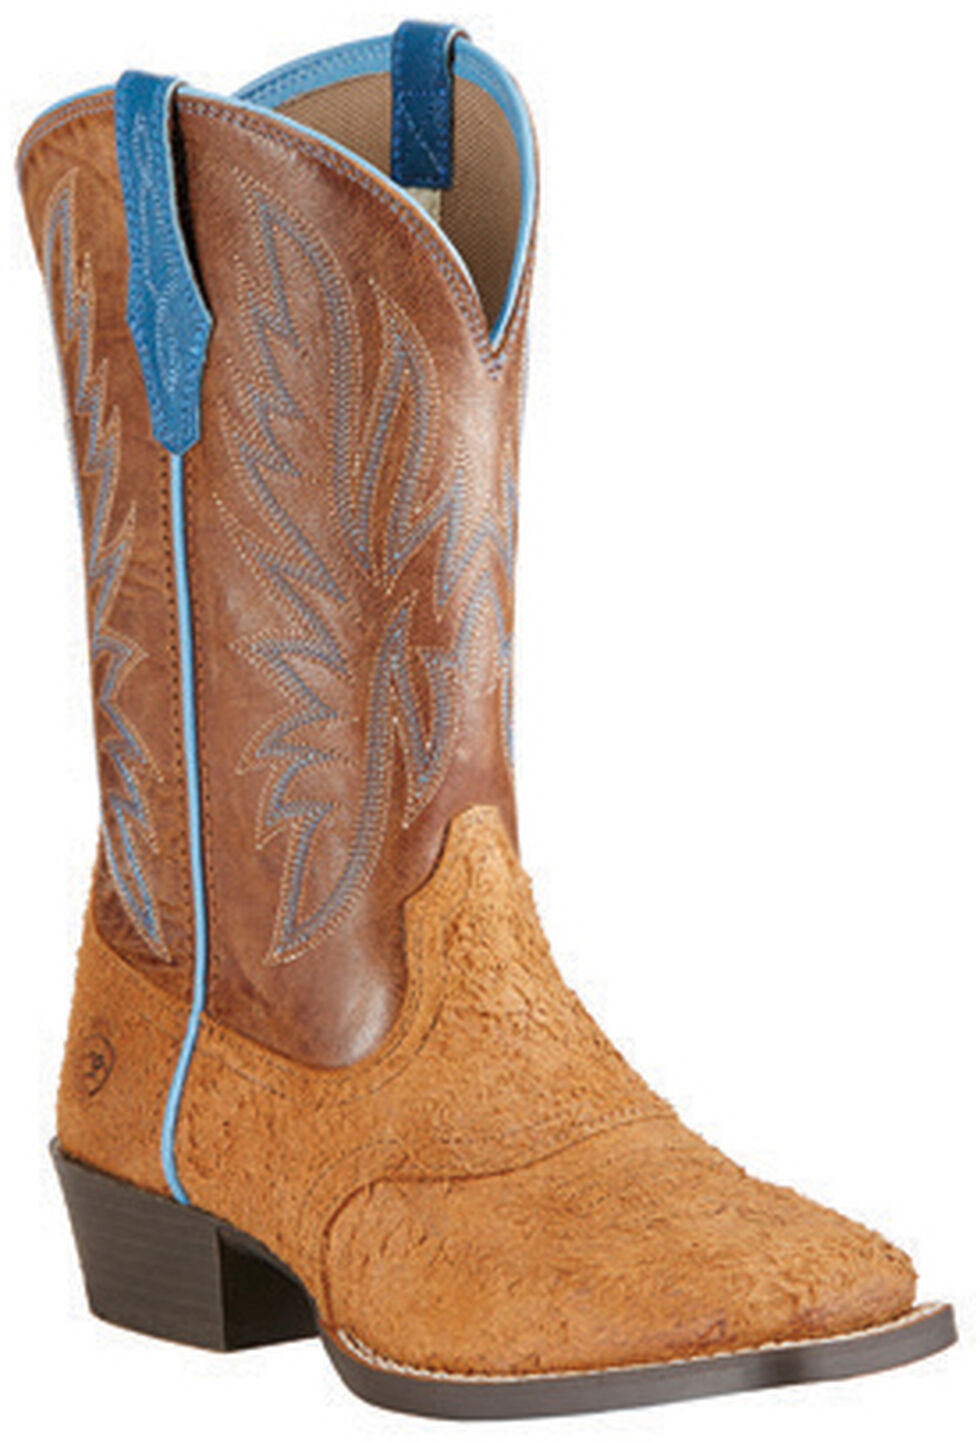 Ariat Youth Boys' Outrider Cowboy Boots - Square Toe, , hi-res